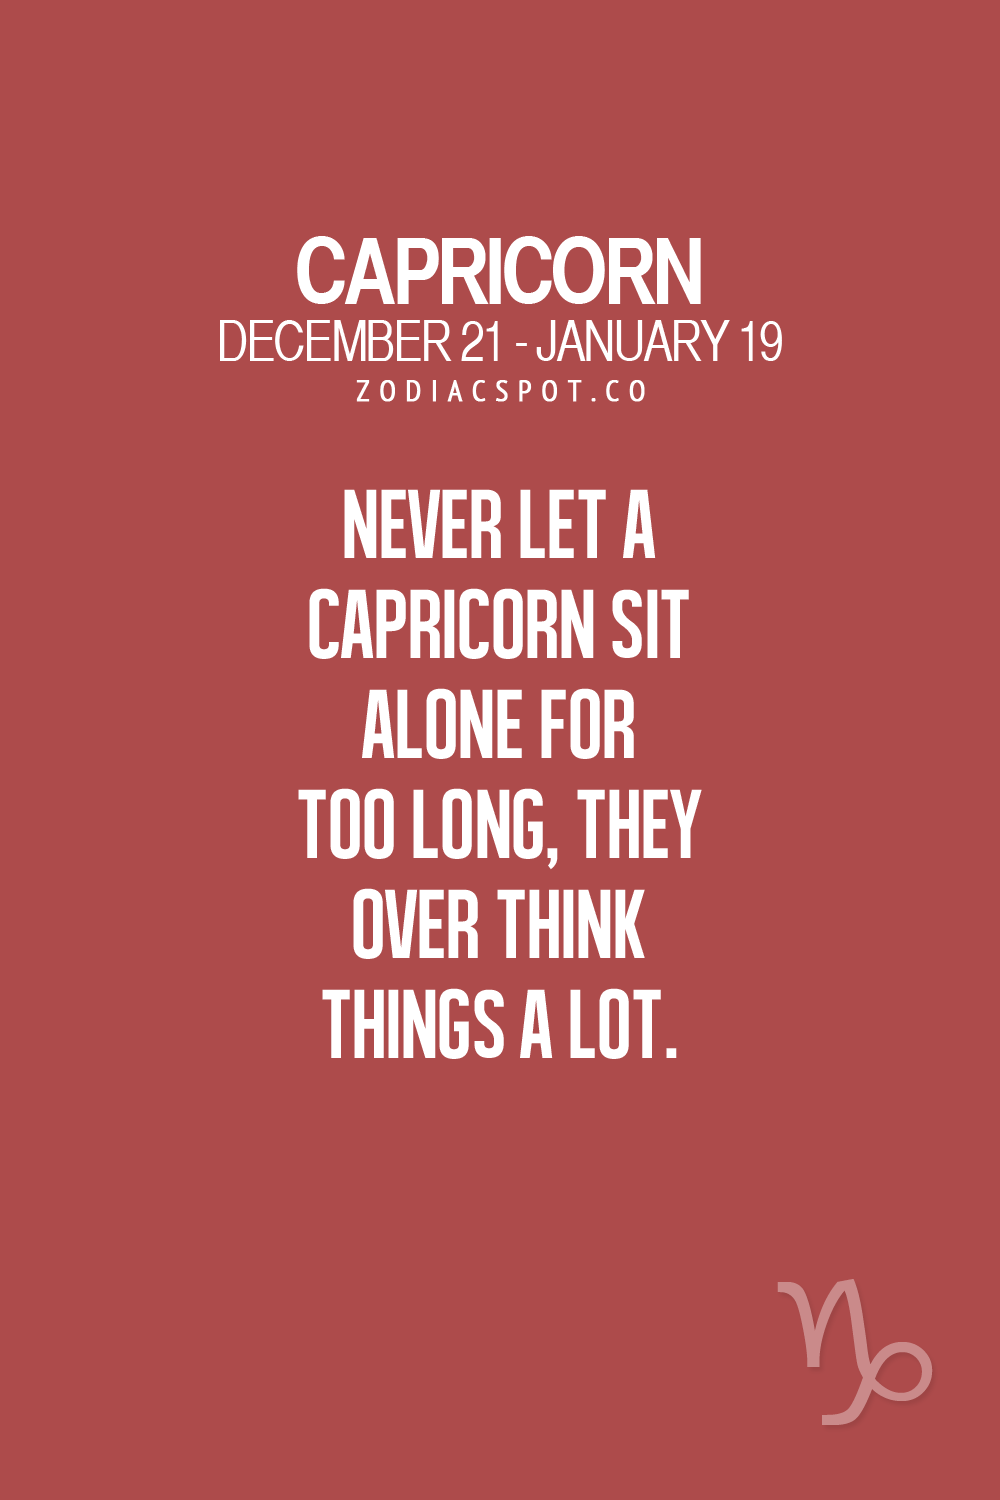 How Capricorn Women May Appear to the Outside World